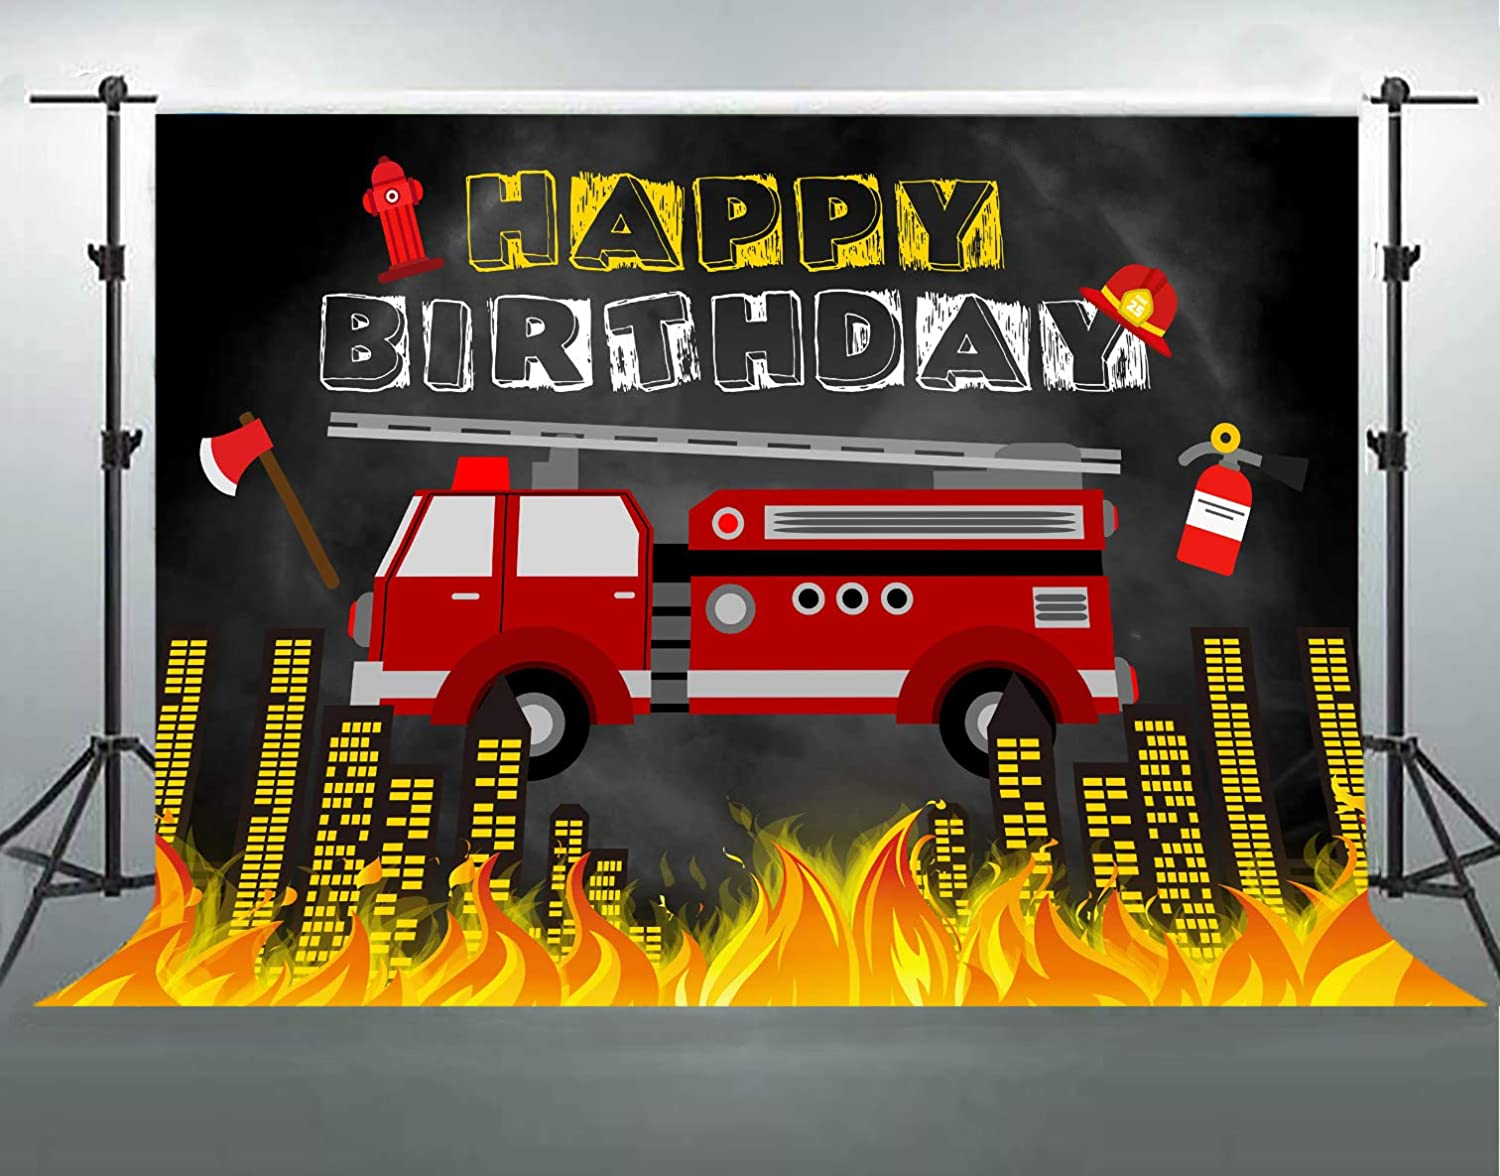 Firetruck Backdrop for Birthday Party, 7x5ft Soft Cotton, Fireman Fire Truck Firefighter Photography Background, Children Bday Party Decor Supplies, Photo Booth Props LHFS1188